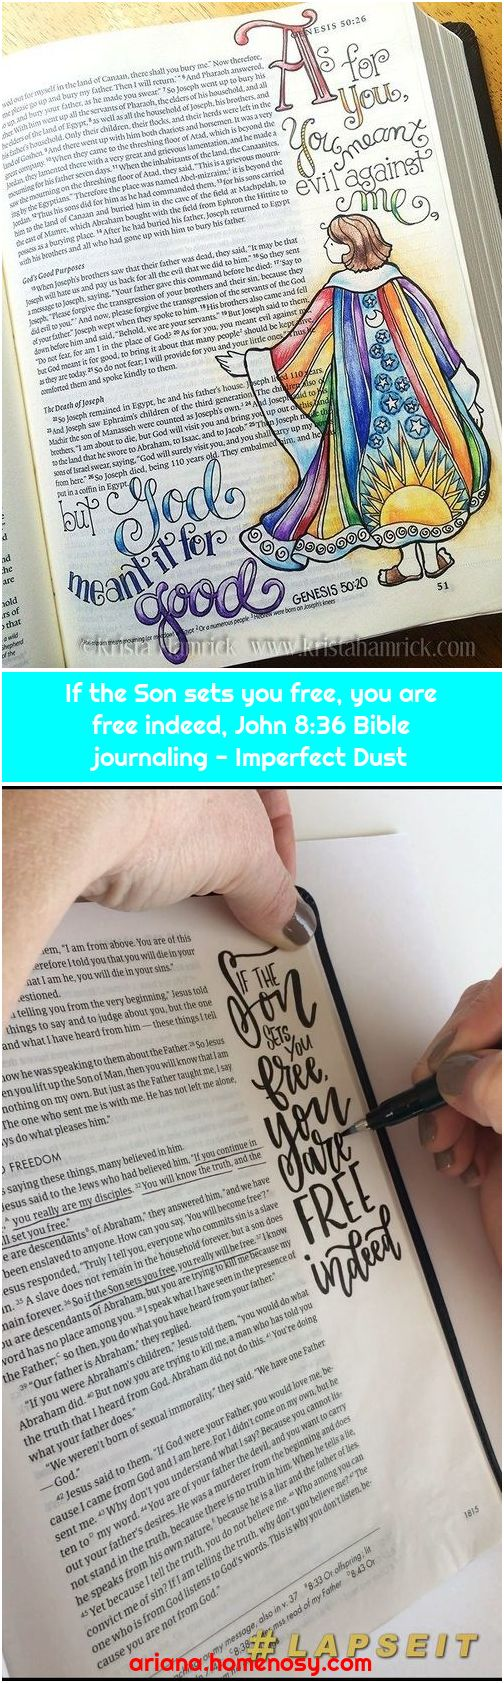 If the Son sets you free, you are free indeed, John 8:36 Bible journaling - Imperfect Dust